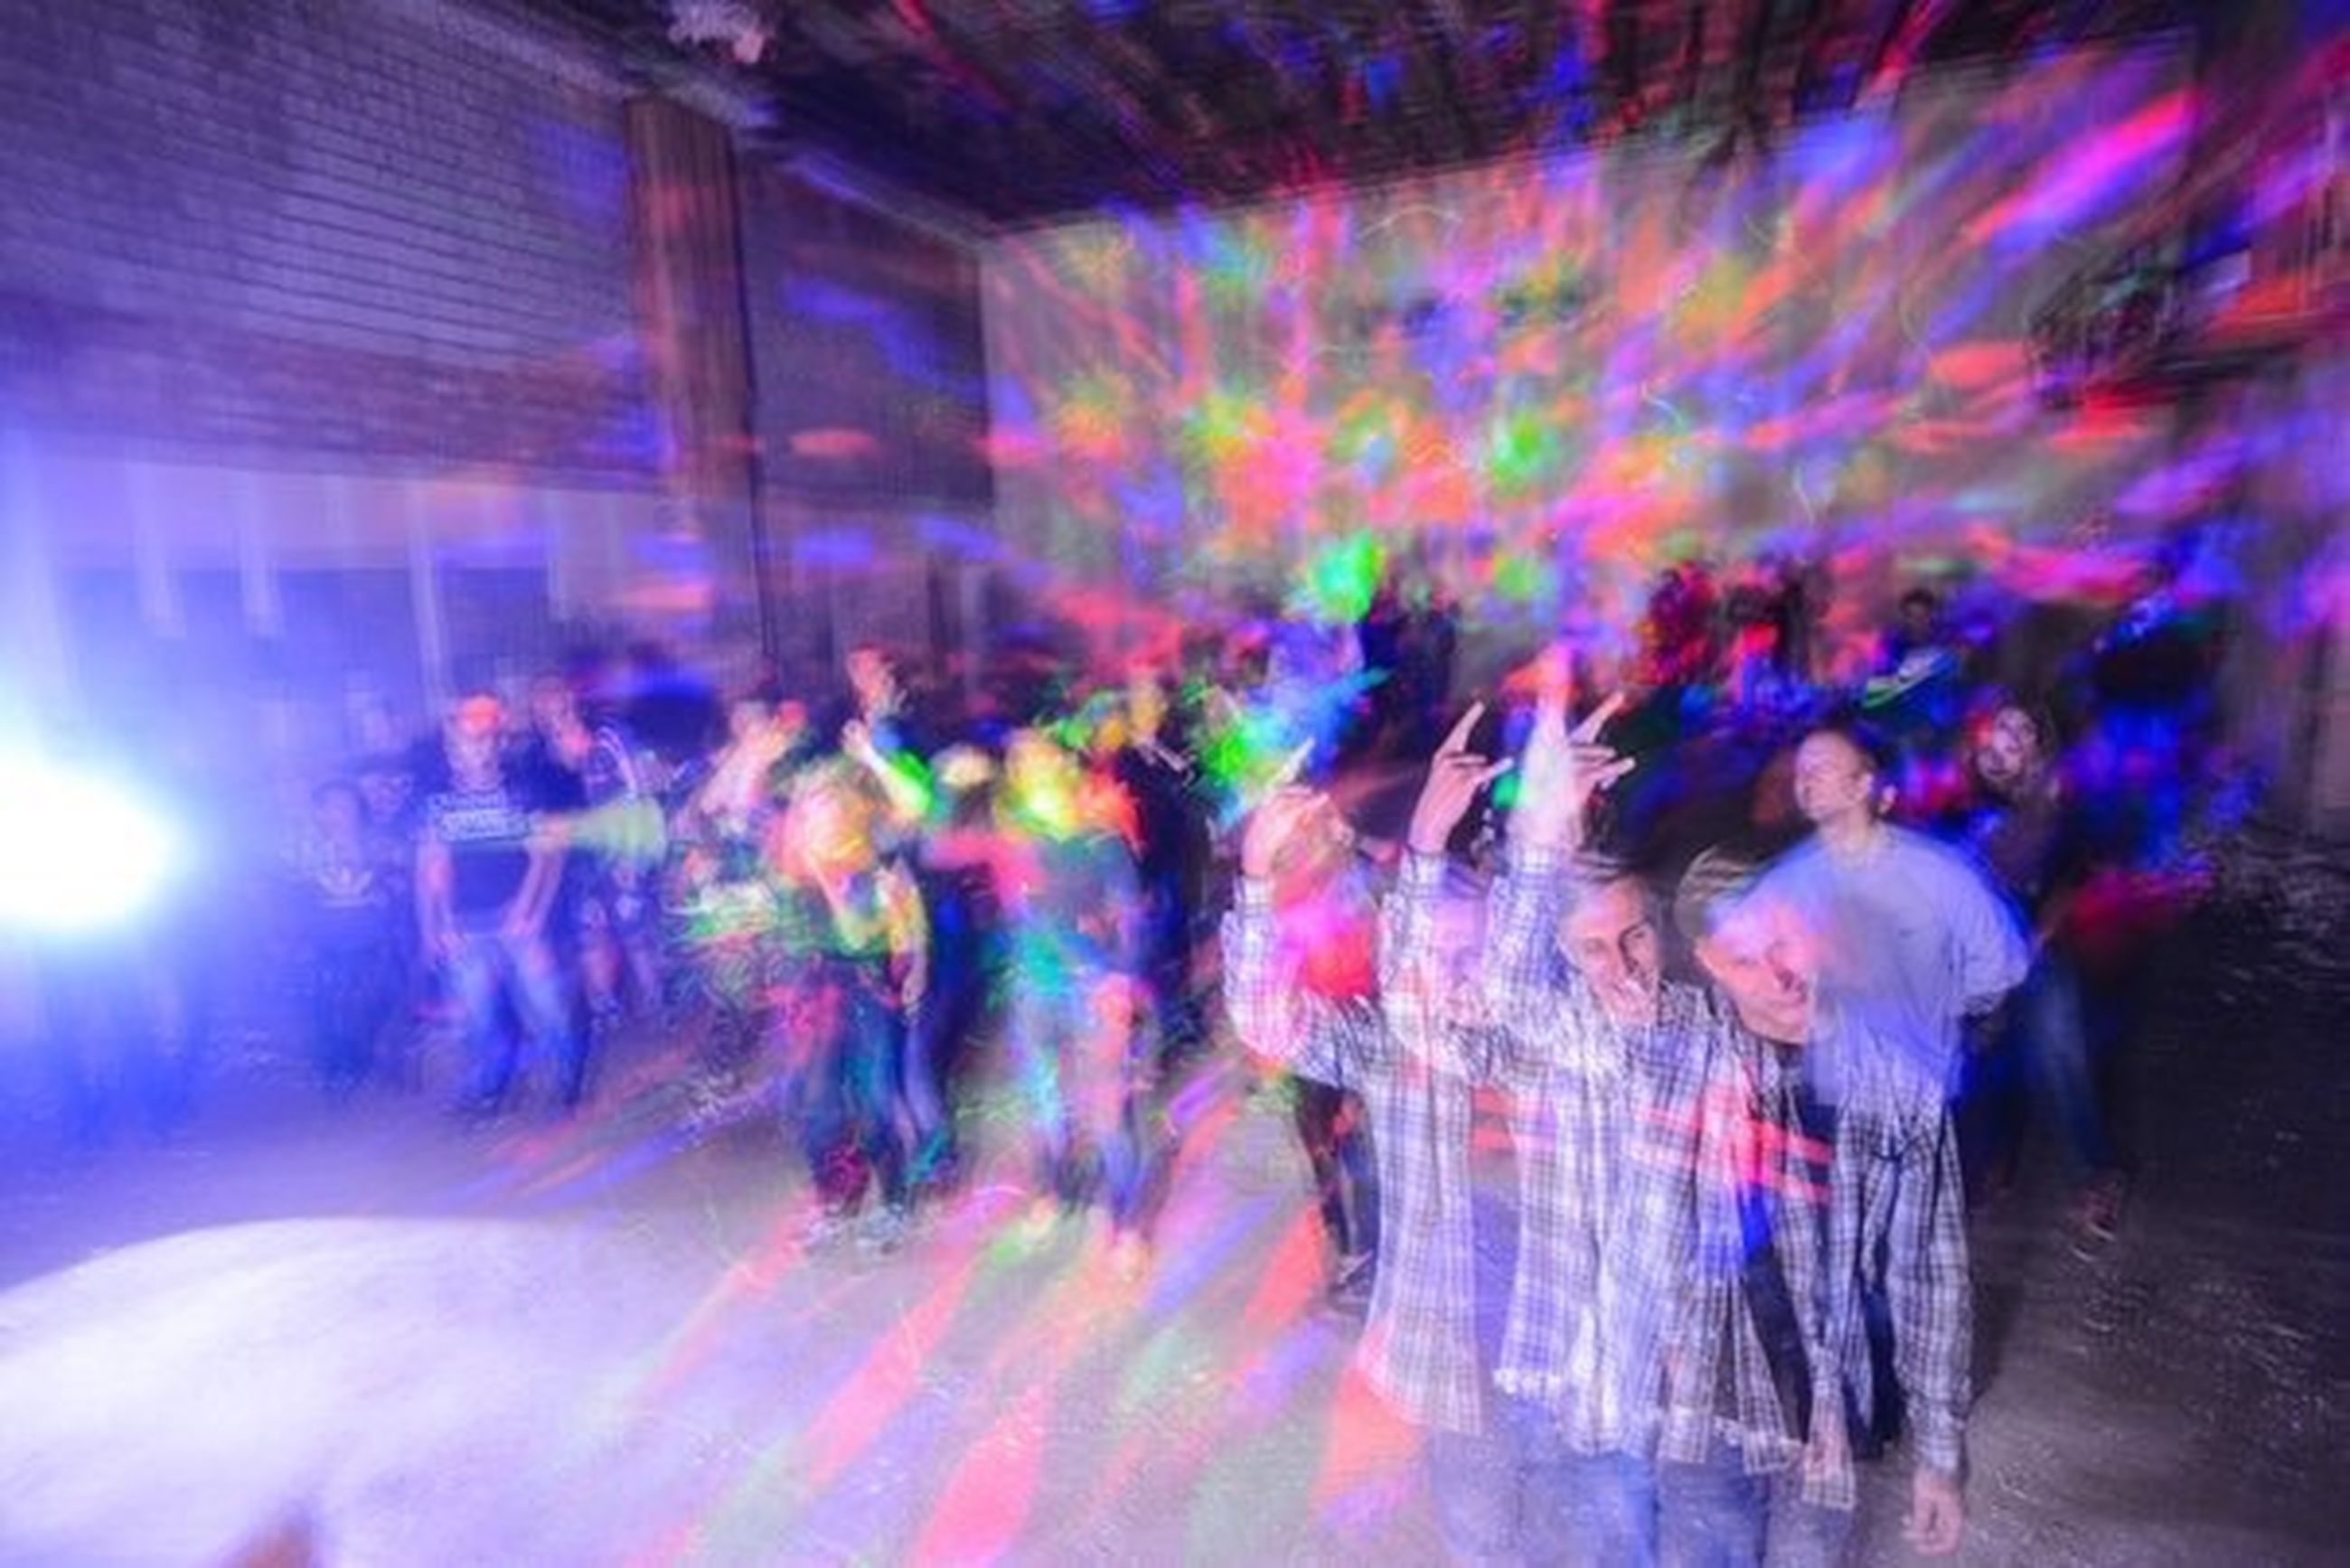 illuminated, night, medium group of people, multi colored, blurred motion, enjoyment, group of people, person, togetherness, nightlife, limb, fun, glowing, party, vibrant color